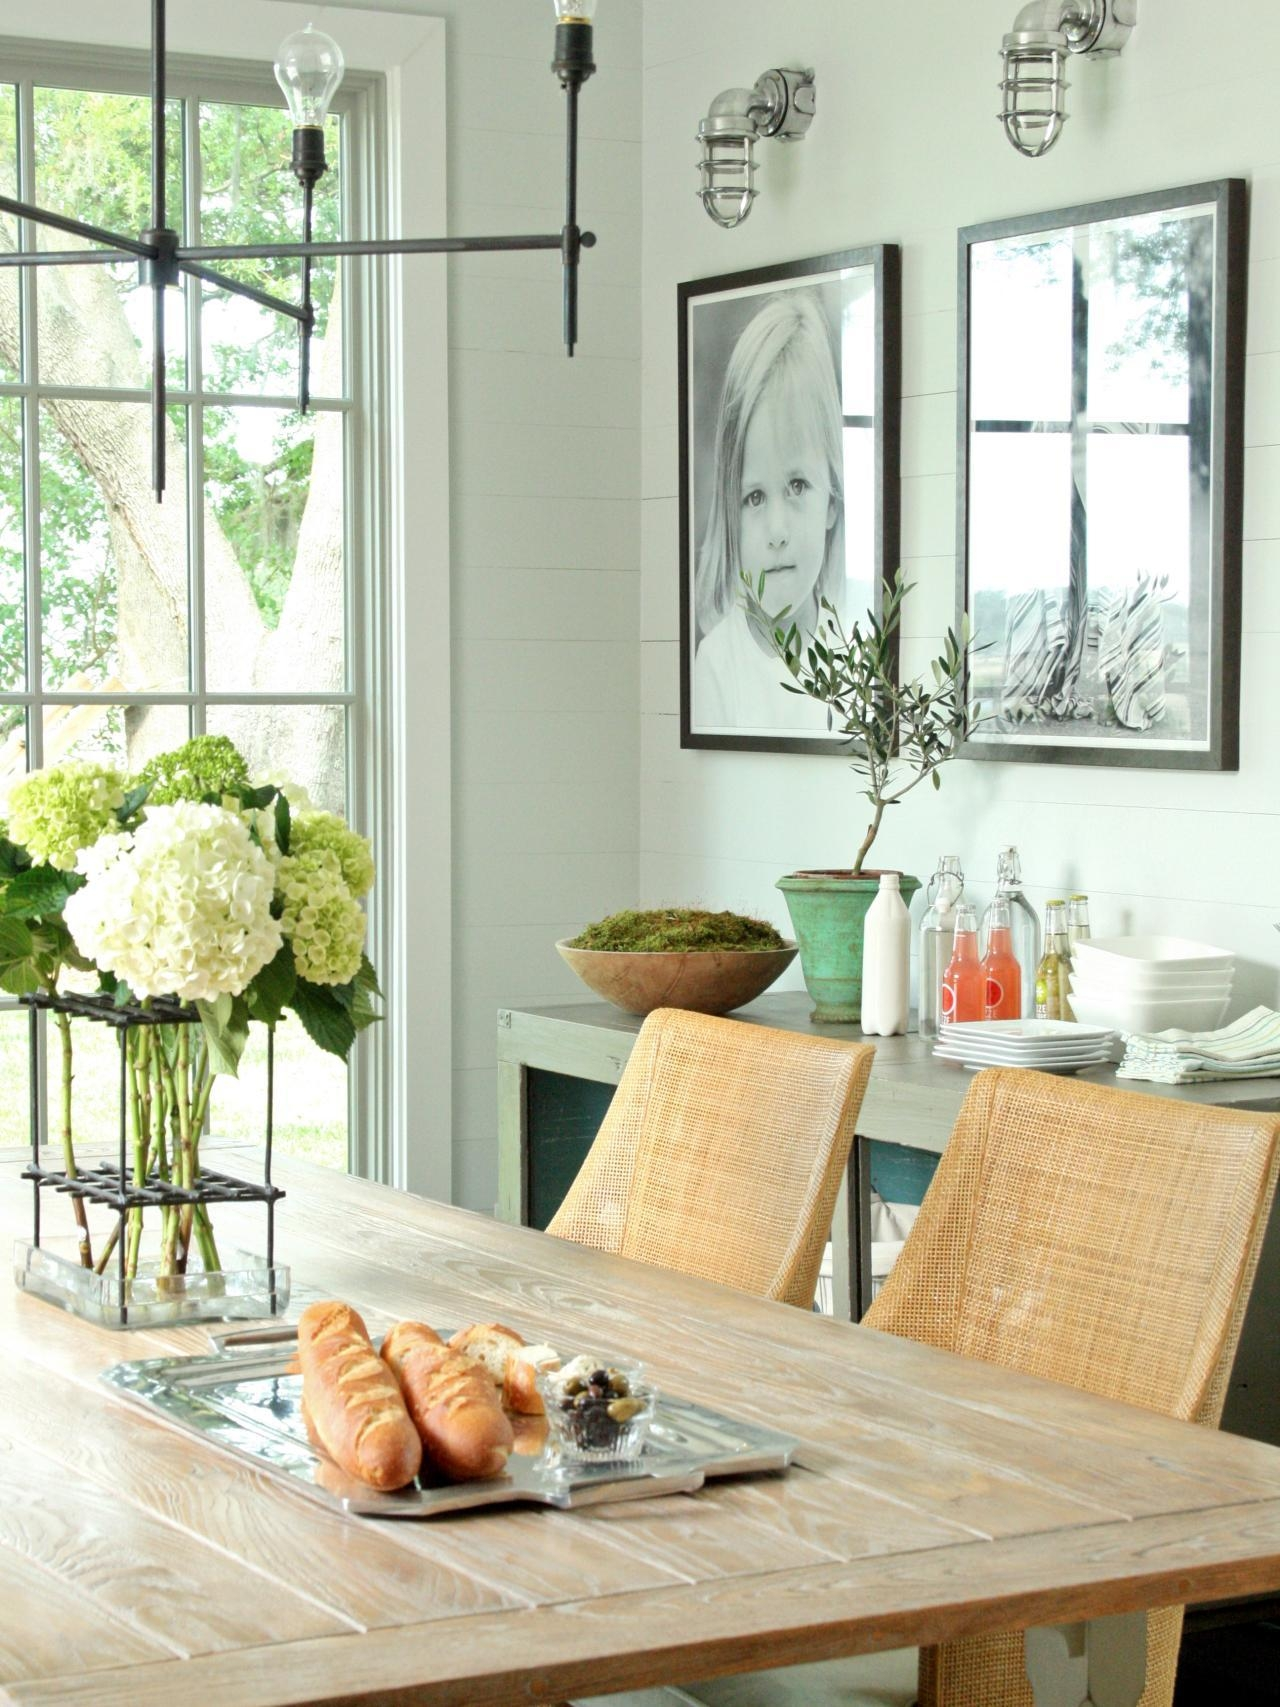 15 Ways To Dress Up Your Dining Room Walls | Hgtv's Decorating With Wall Art For Dining Room (View 7 of 20)